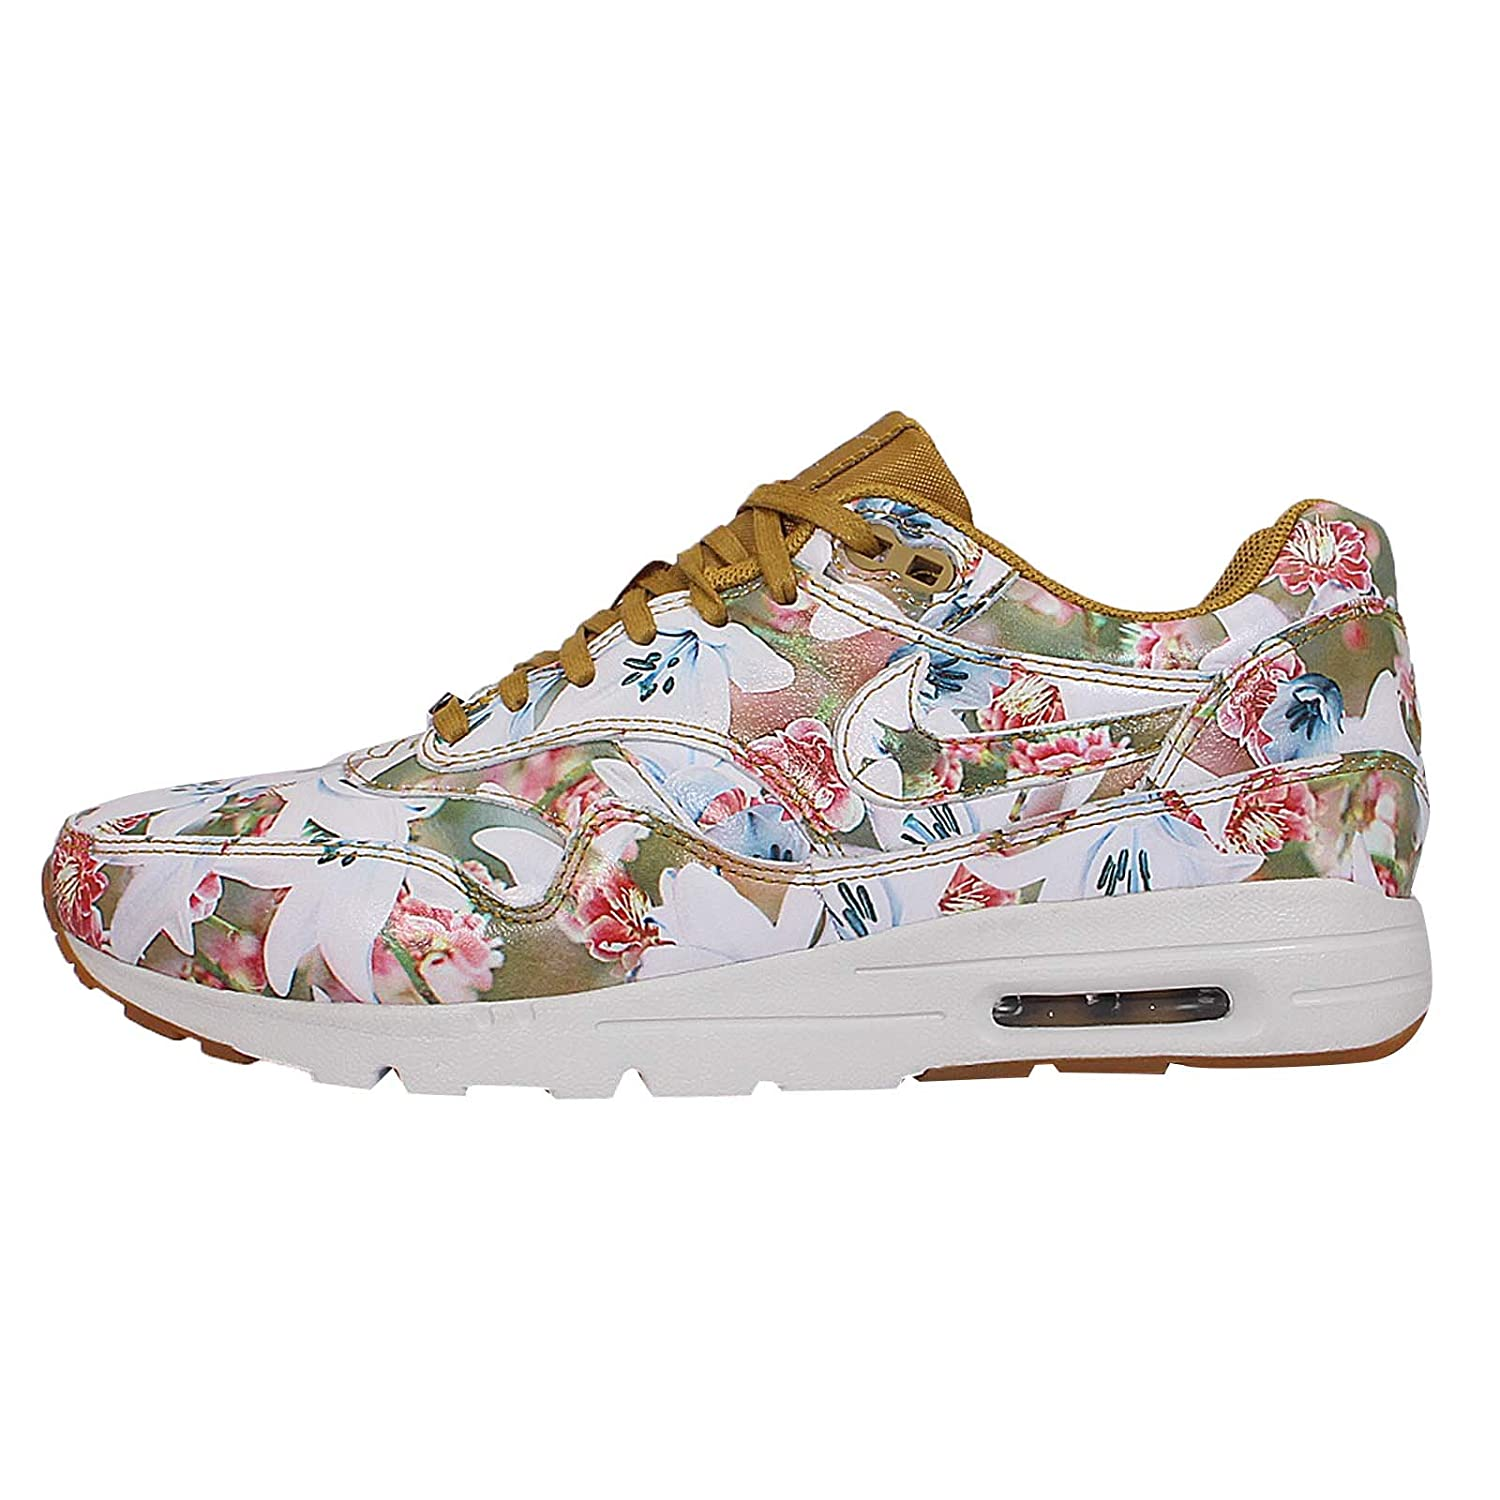 f5a4e07678 Amazon.com: Nike WMNS Air Max 1 Ultra LOTC QS [747105-700] NSW Running City  Pack Milan: Health & Personal Care